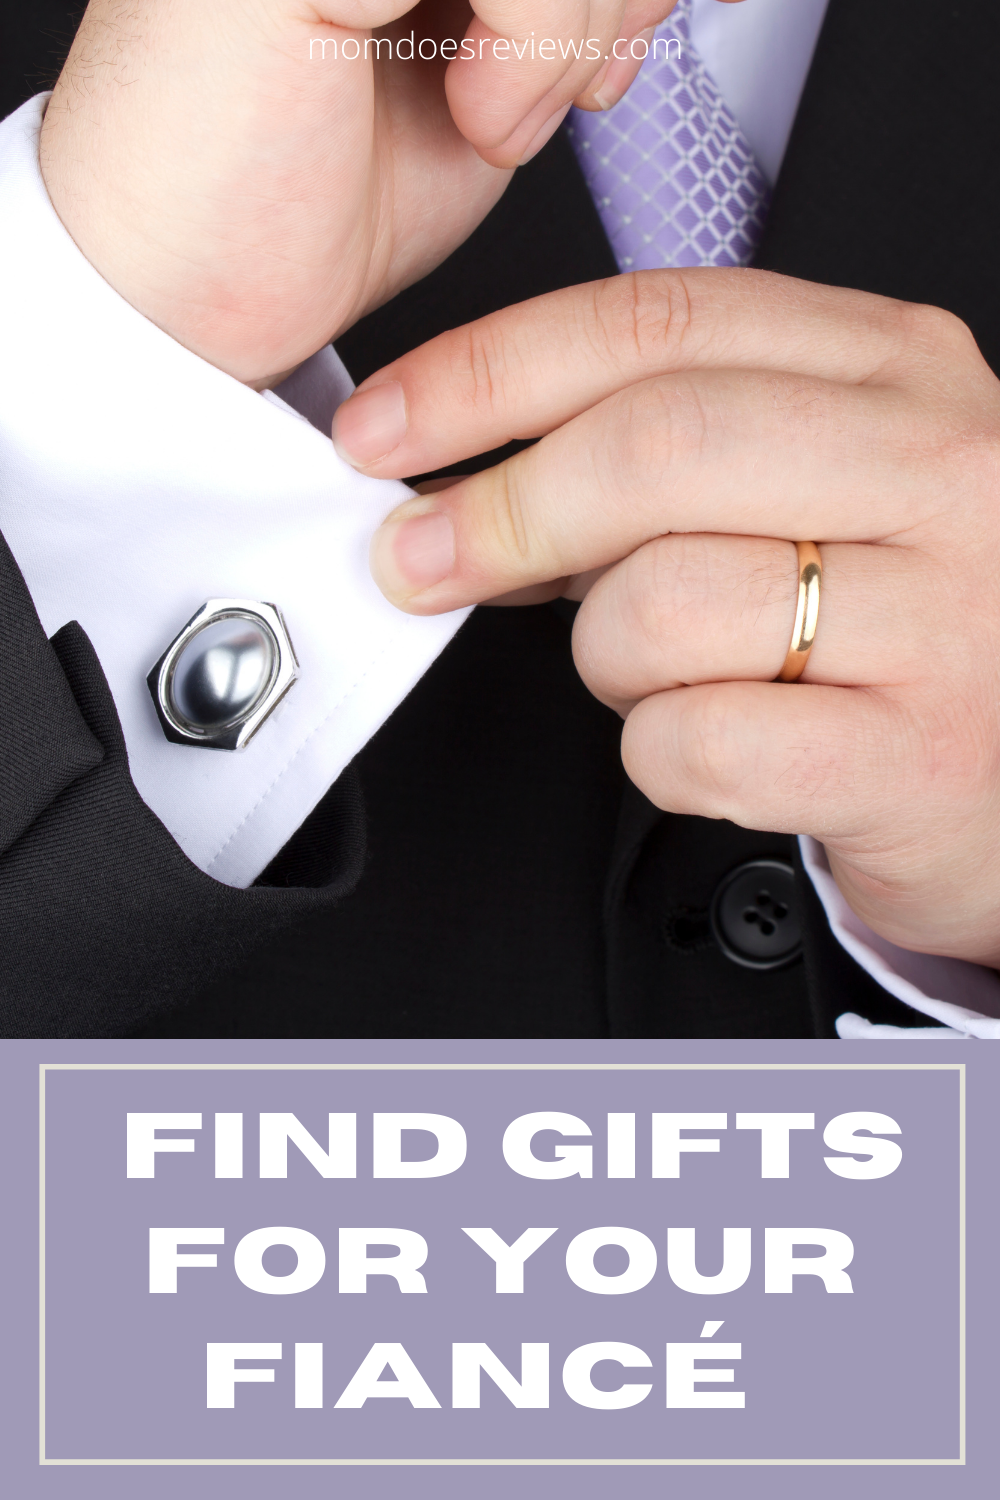 How to Find the Perfect Gift for your Fiancé